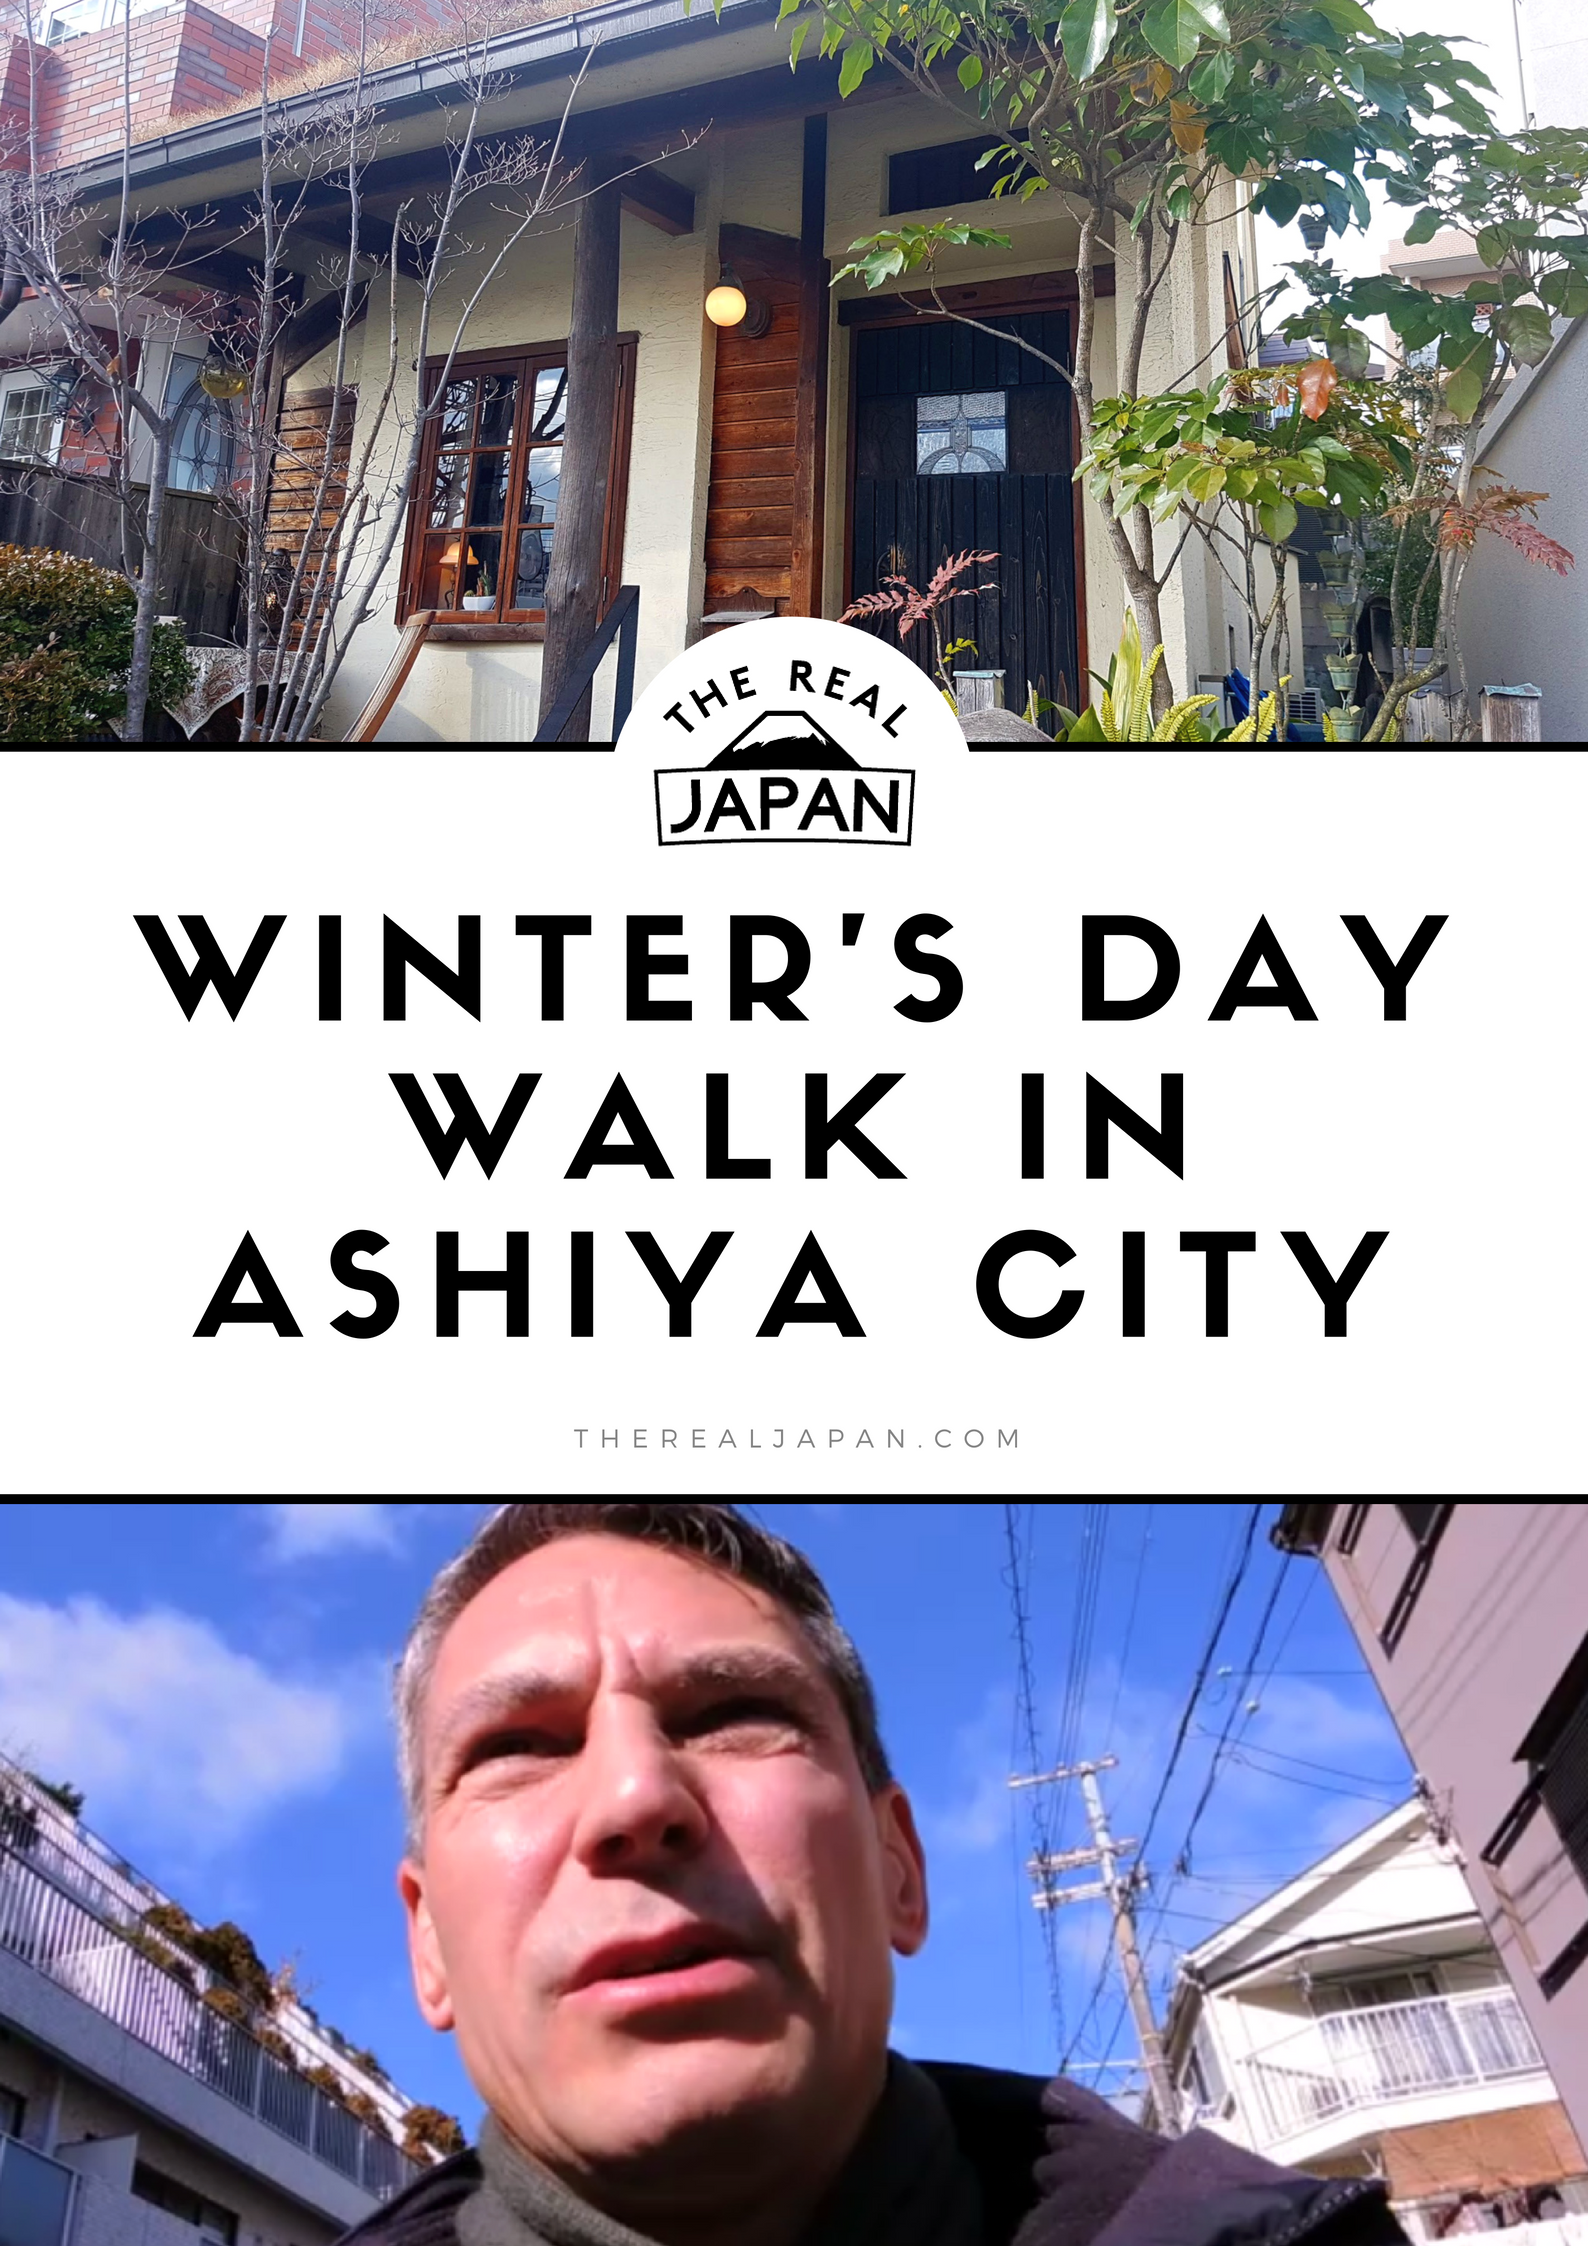 walk in Ashiya City video Rob Dyer The Real Japan